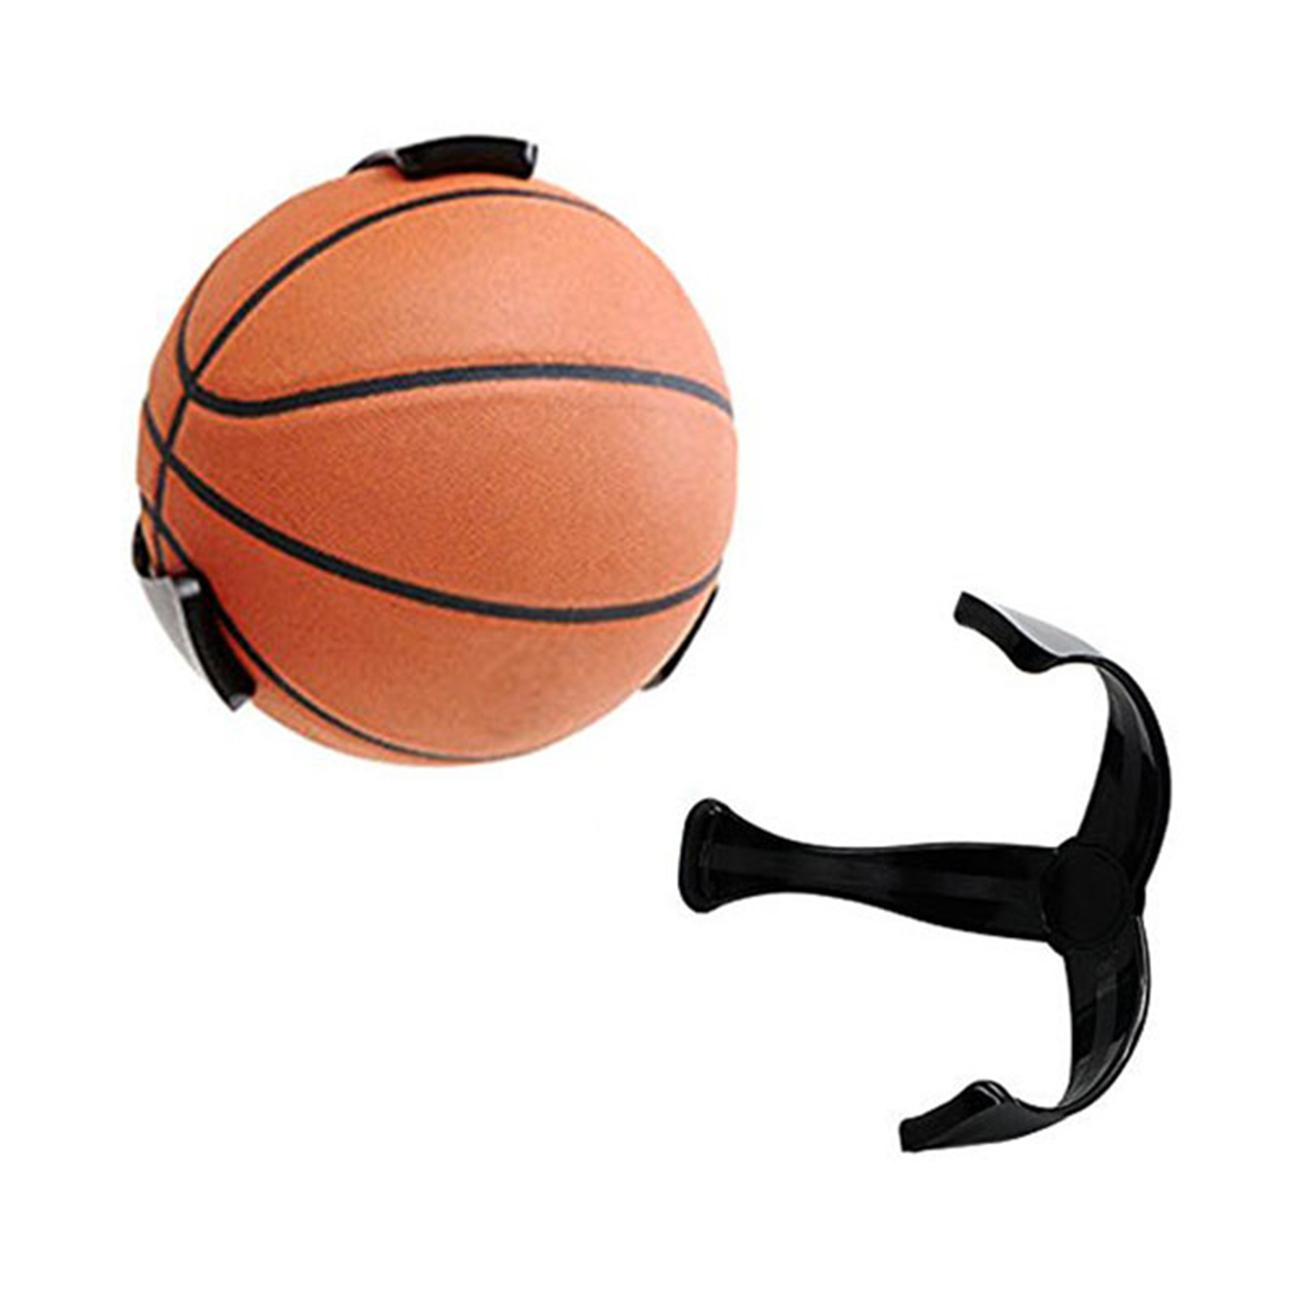 Ball Claw Basketball Holder Football Rugby Volleyball Show Wall Fix Display D1Q8